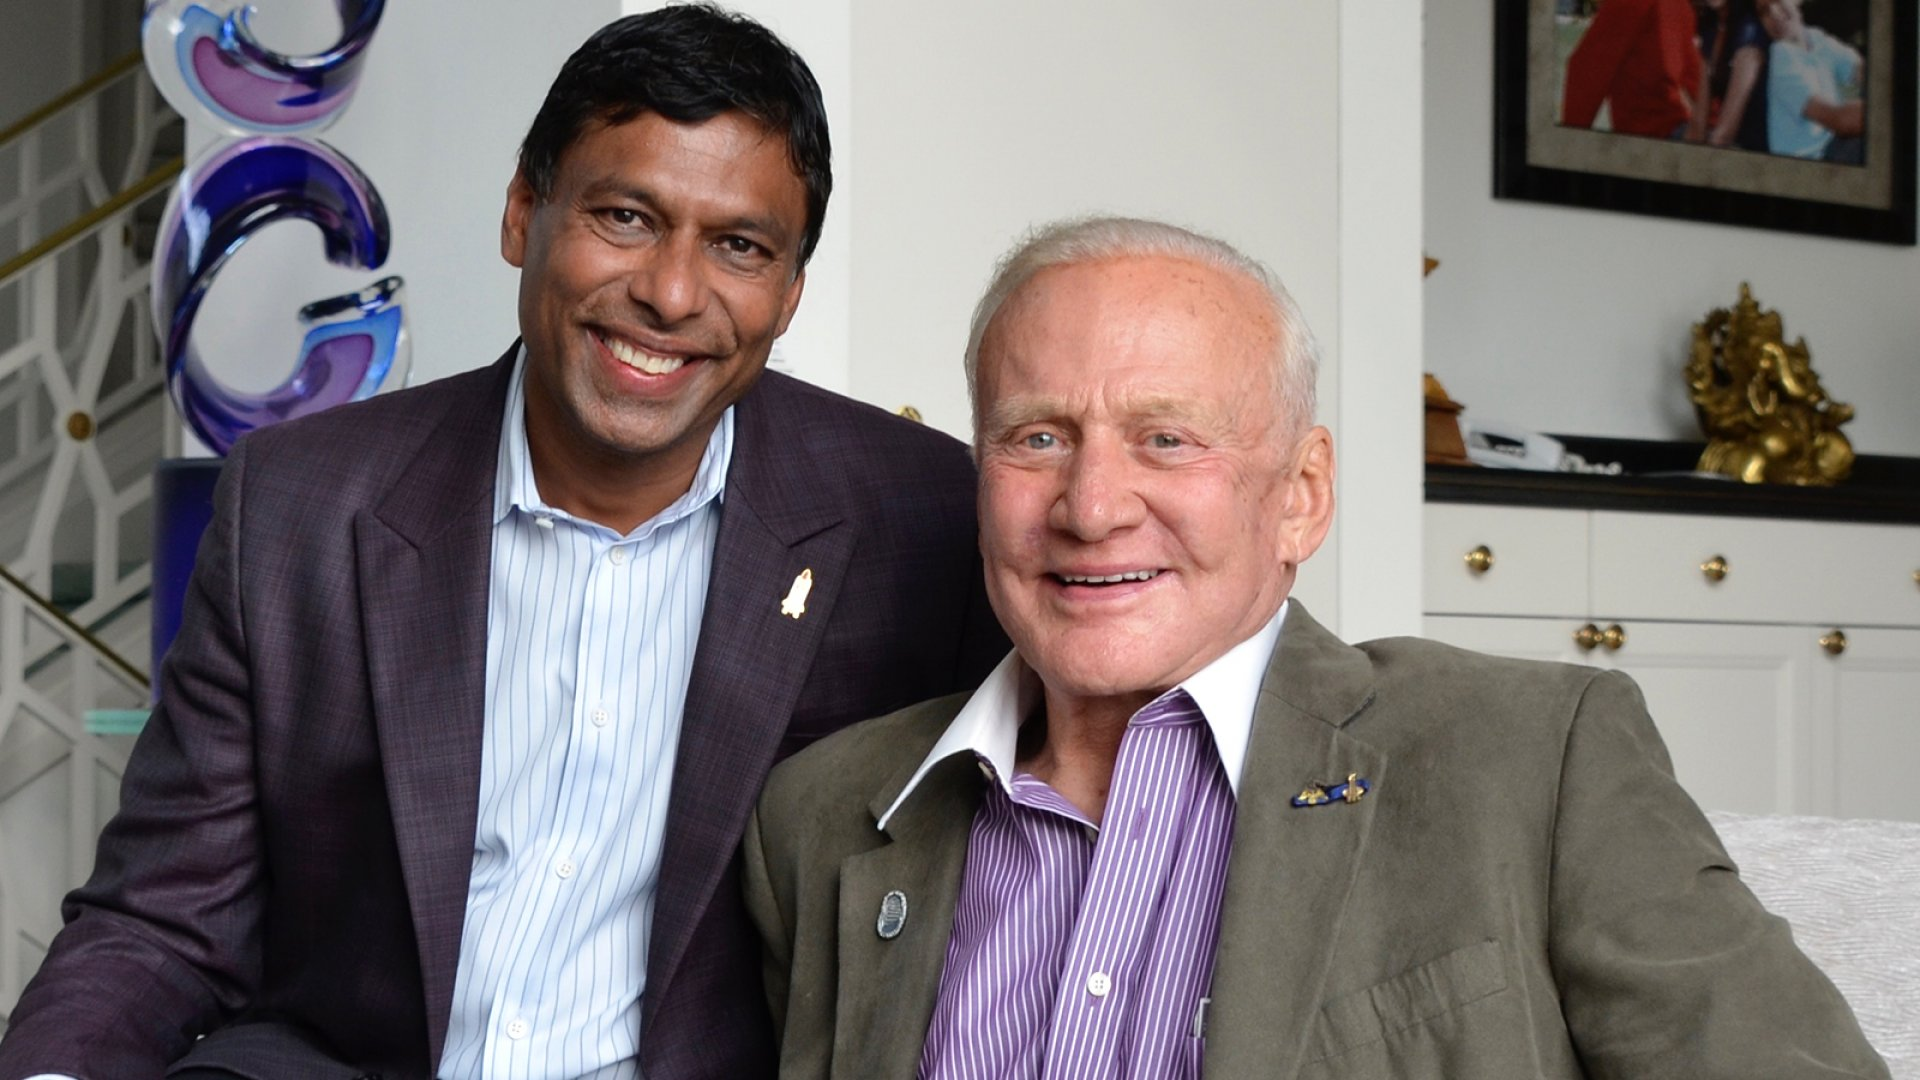 Moon Express founder and CEO Naveen Jain (left) with lunar astronaut Buzz Aldrin.